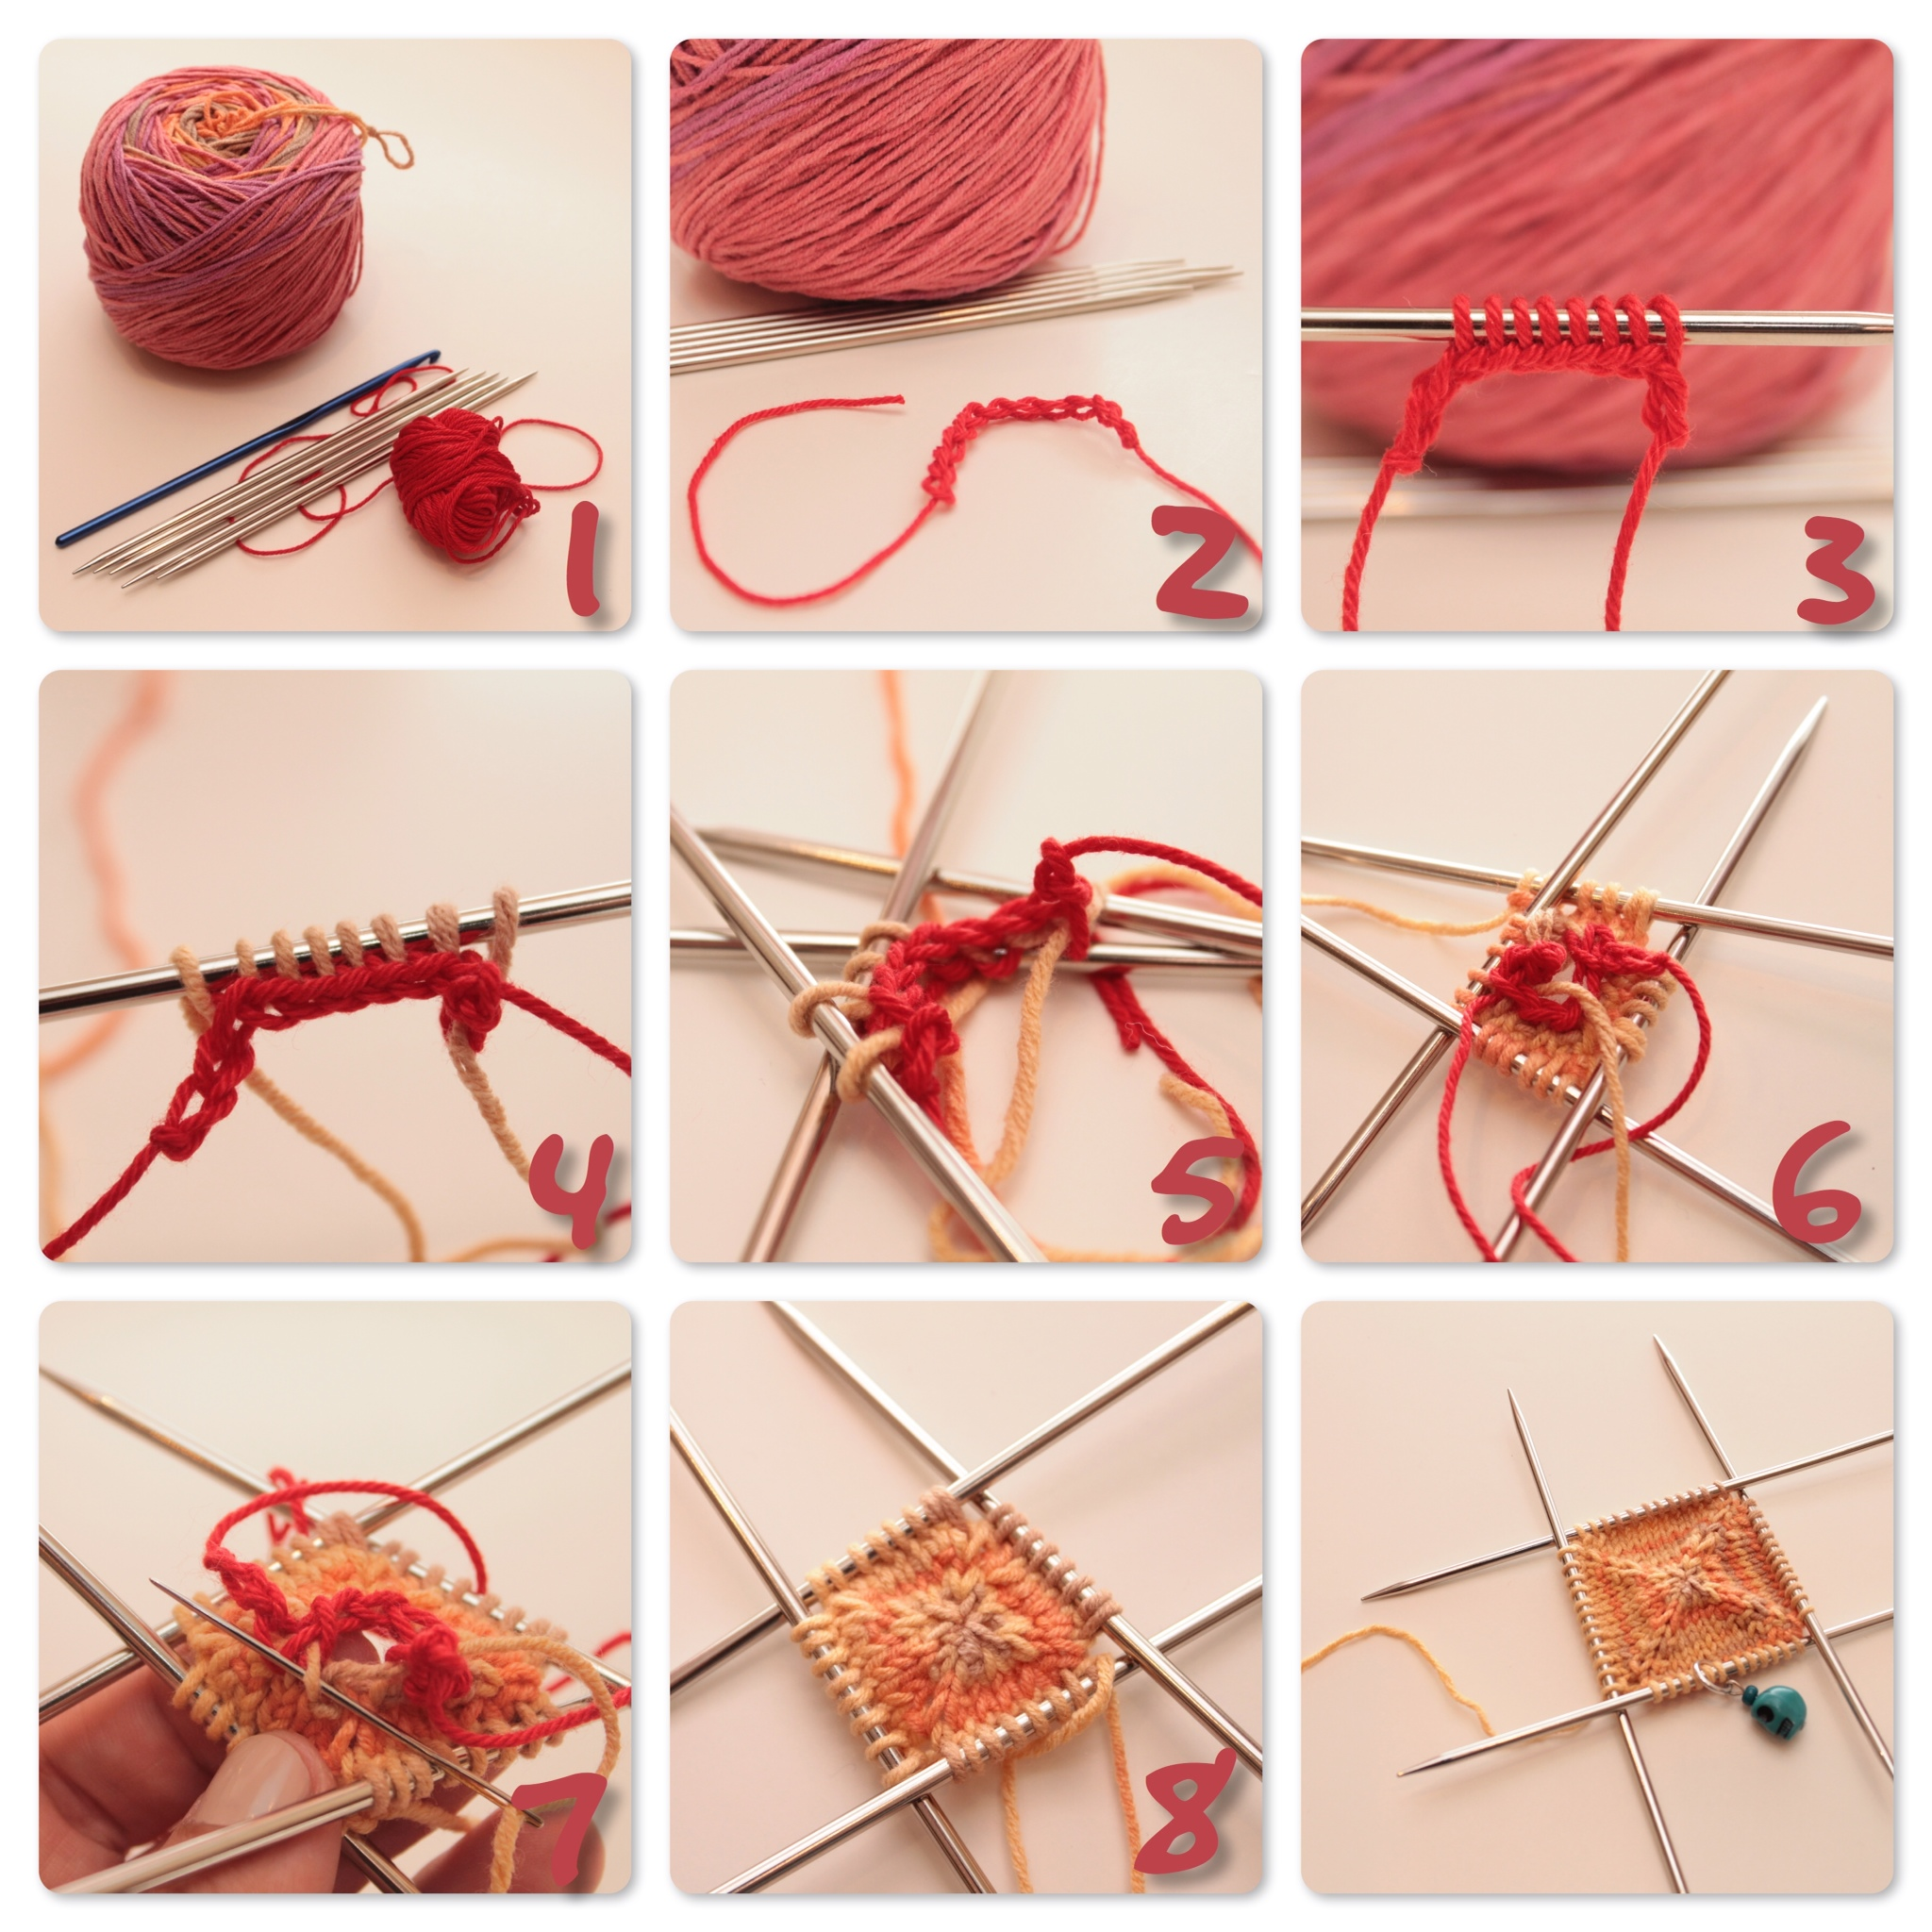 How To Cast On Stitches For Knitting With A Crochet Hook : Knitting from the center out.   The C Side